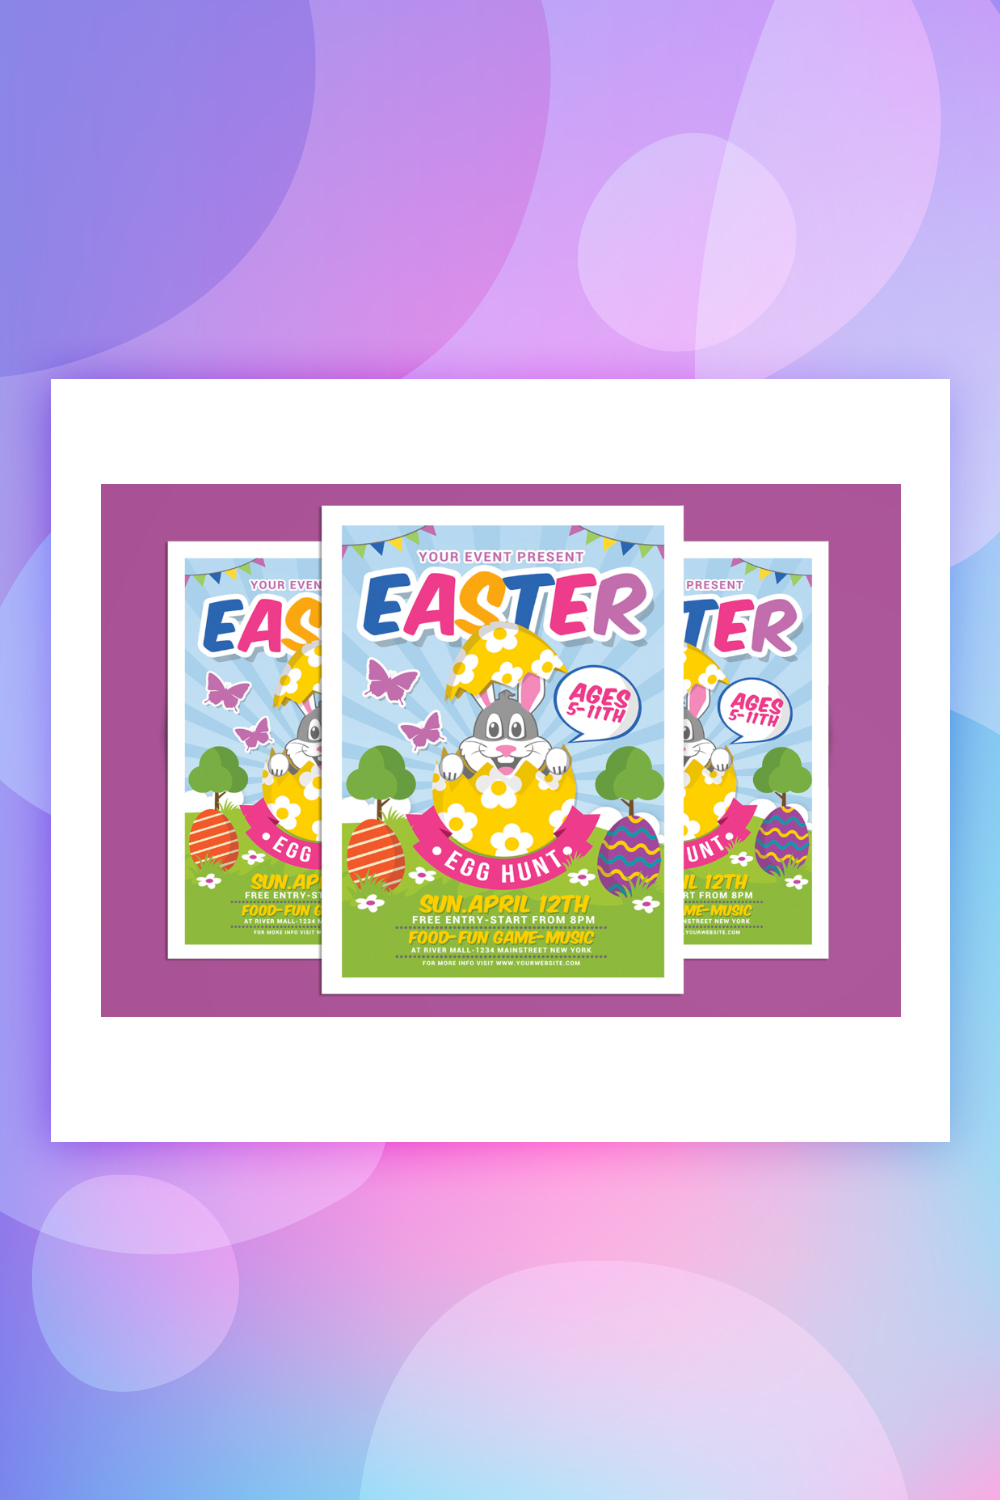 Easter Egg Hunt For Kids Corporate Identity Template